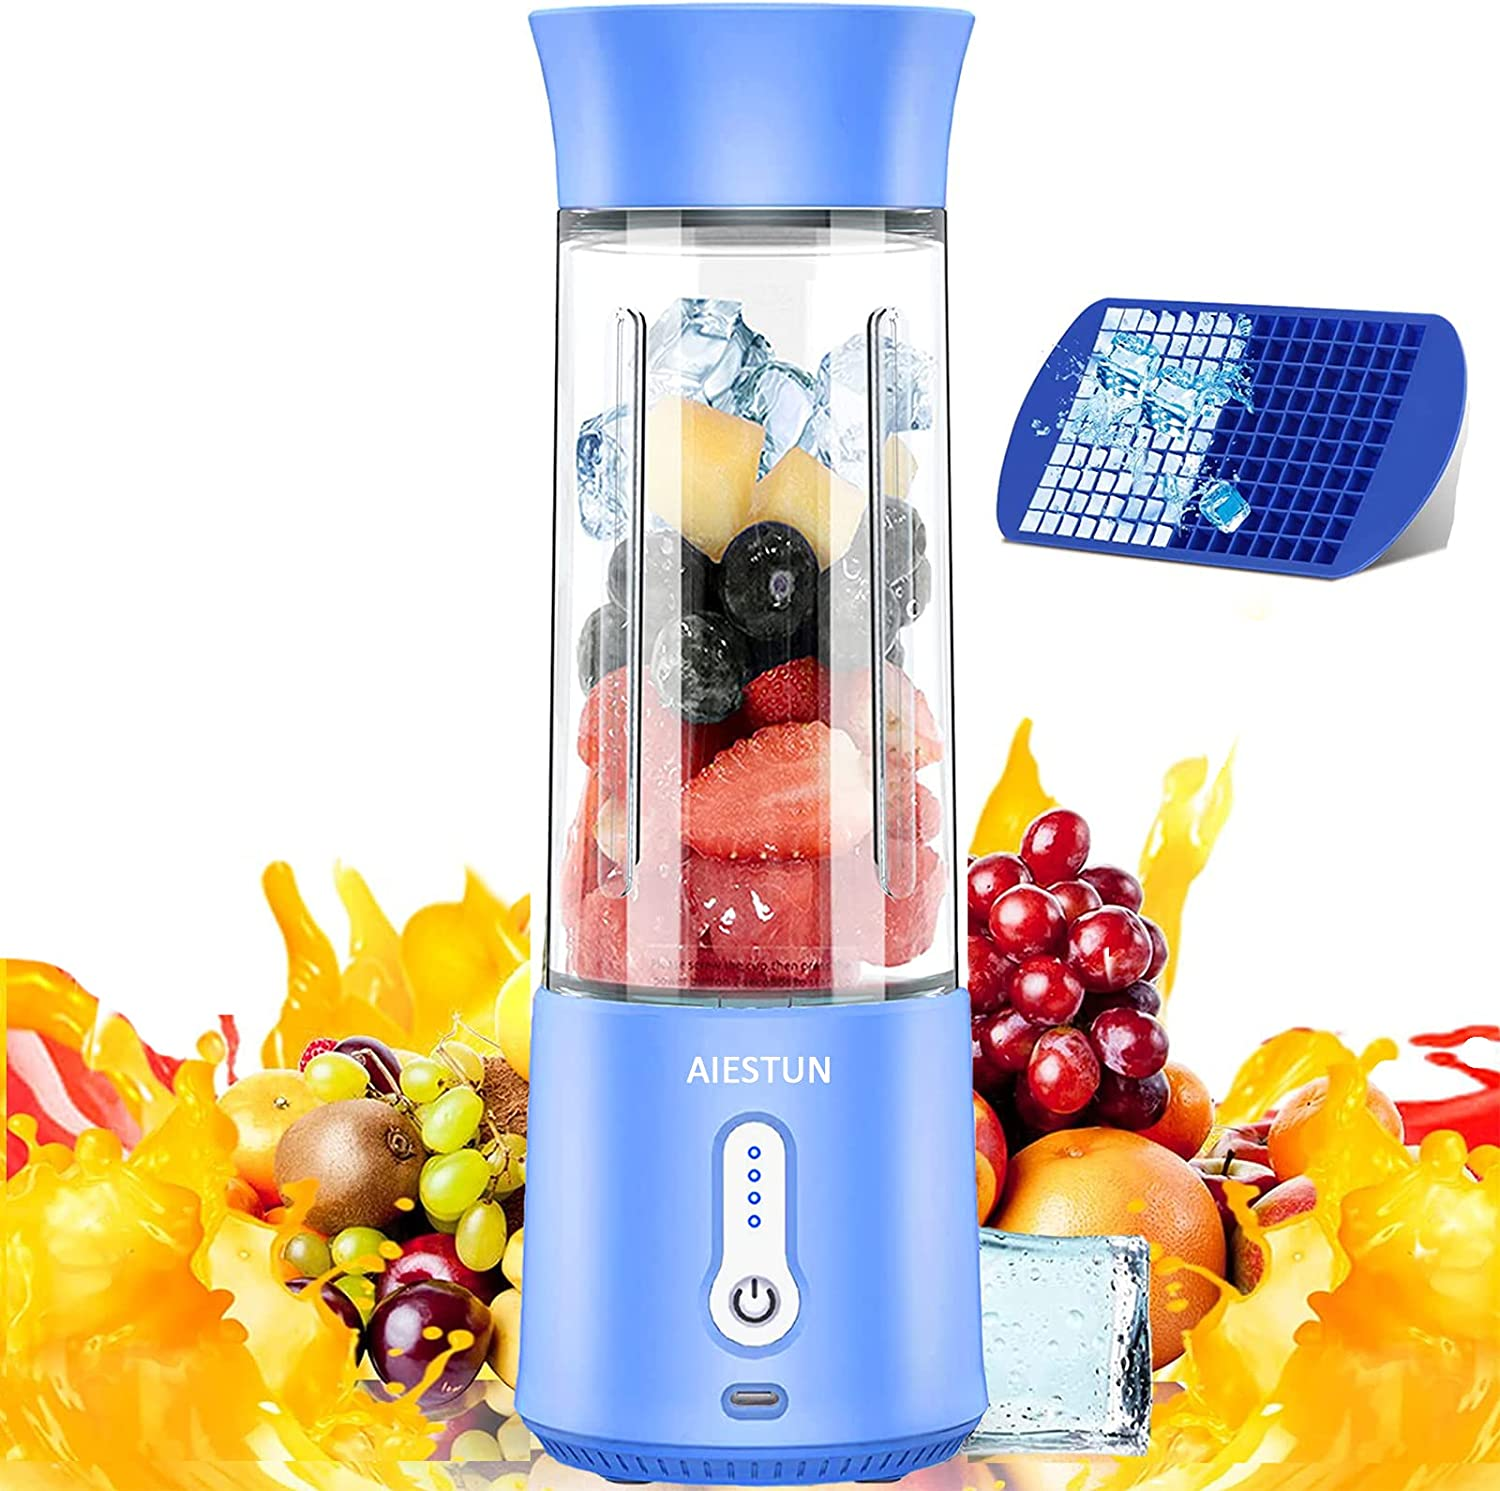 Portable Blender for Shakes and Smoothies, Personal Blender AIESTUN 17 Oz Mini Blender Type-C 4000mAh Rechargeable Six Blades with Ice Tray Small Blender Sports Travel Gym Juicers